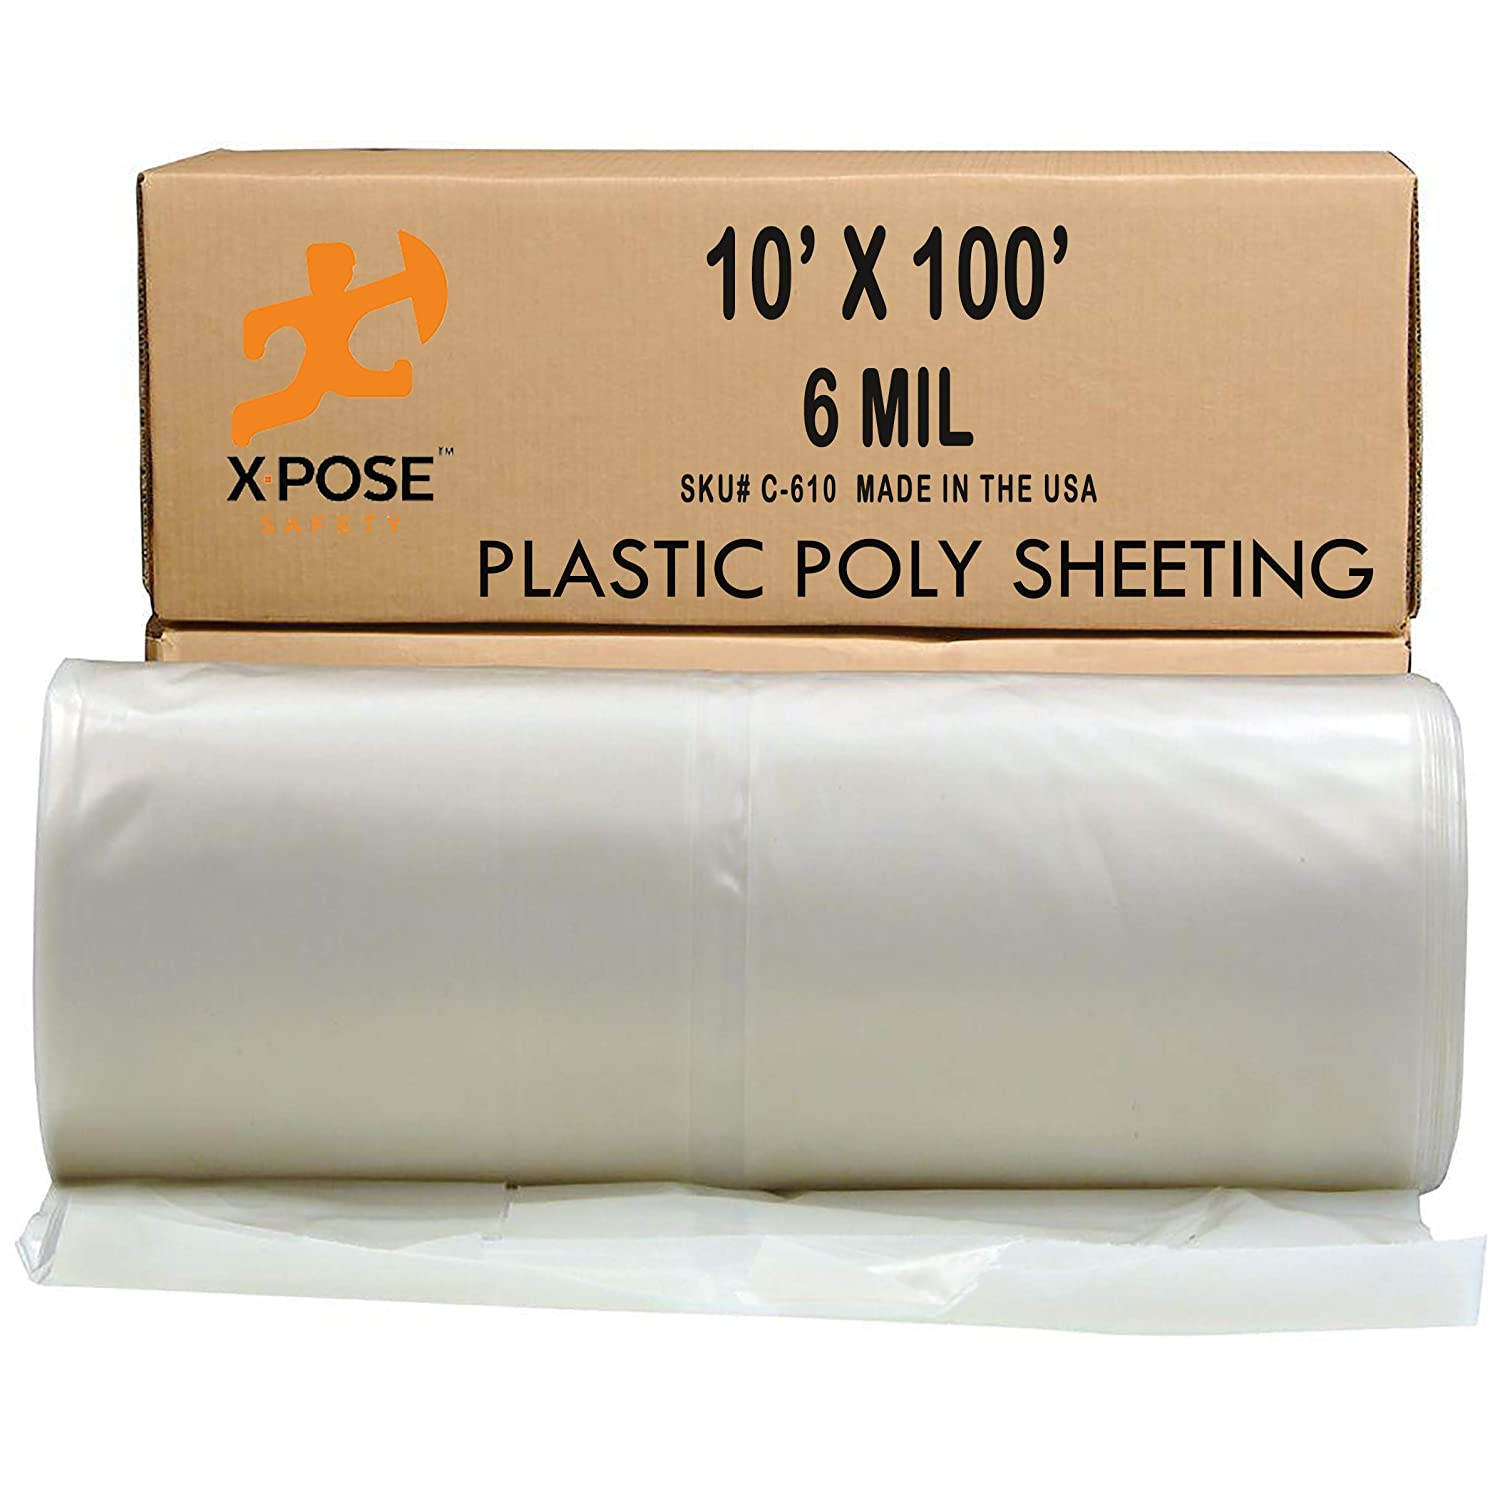 Clear Poly Sheeting - 10x100 Feet – Heavy Duty, 6 Mil Thick Plastic Tarp – Waterproof Vapor and Dust Protective Equipment Cover - Agricultural, Construction and Industrial Use - by Xpose Safety